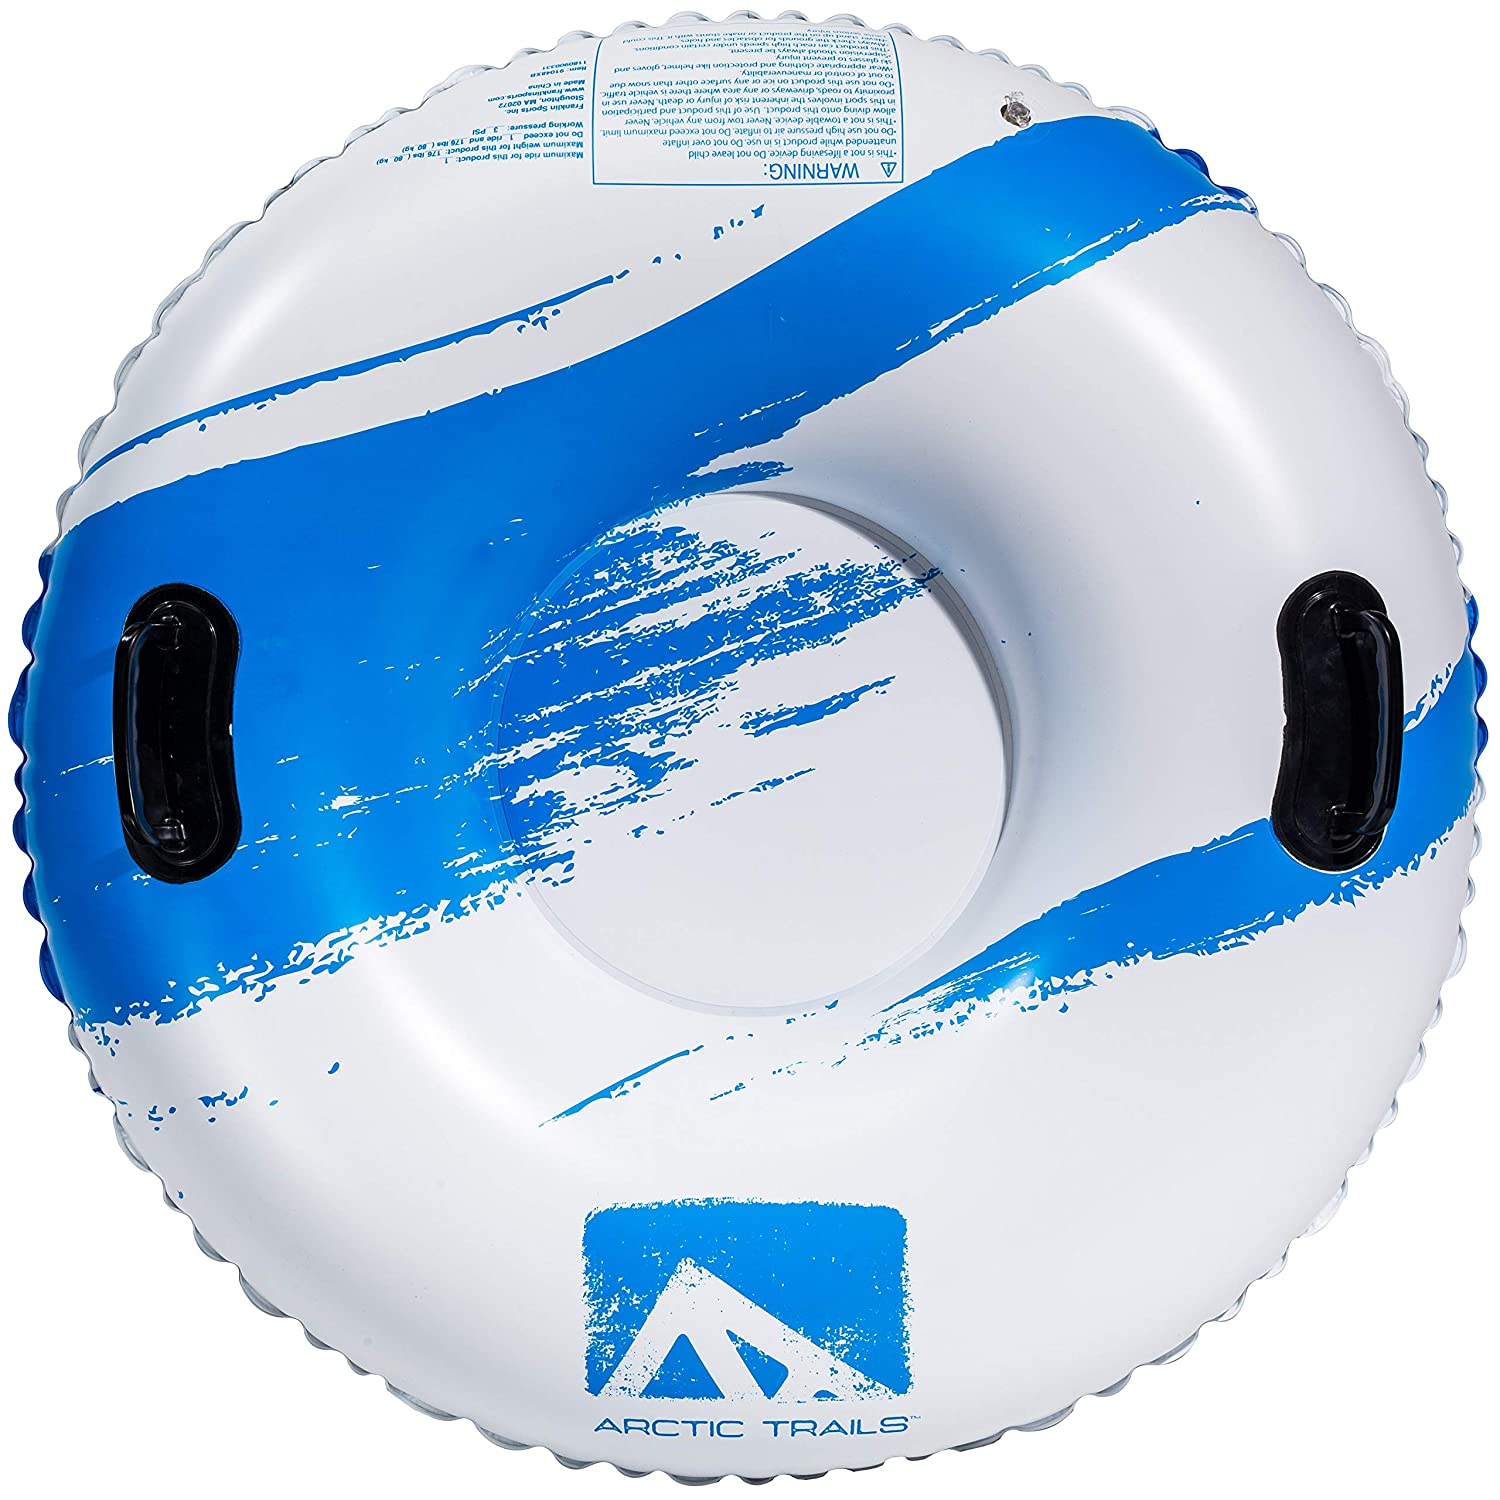 Snow Tube Freeze-Resistant Snow Rider Franklin Sports Arctic Trails Inflatable Snow Sled Snow Racer Lightweight Sled